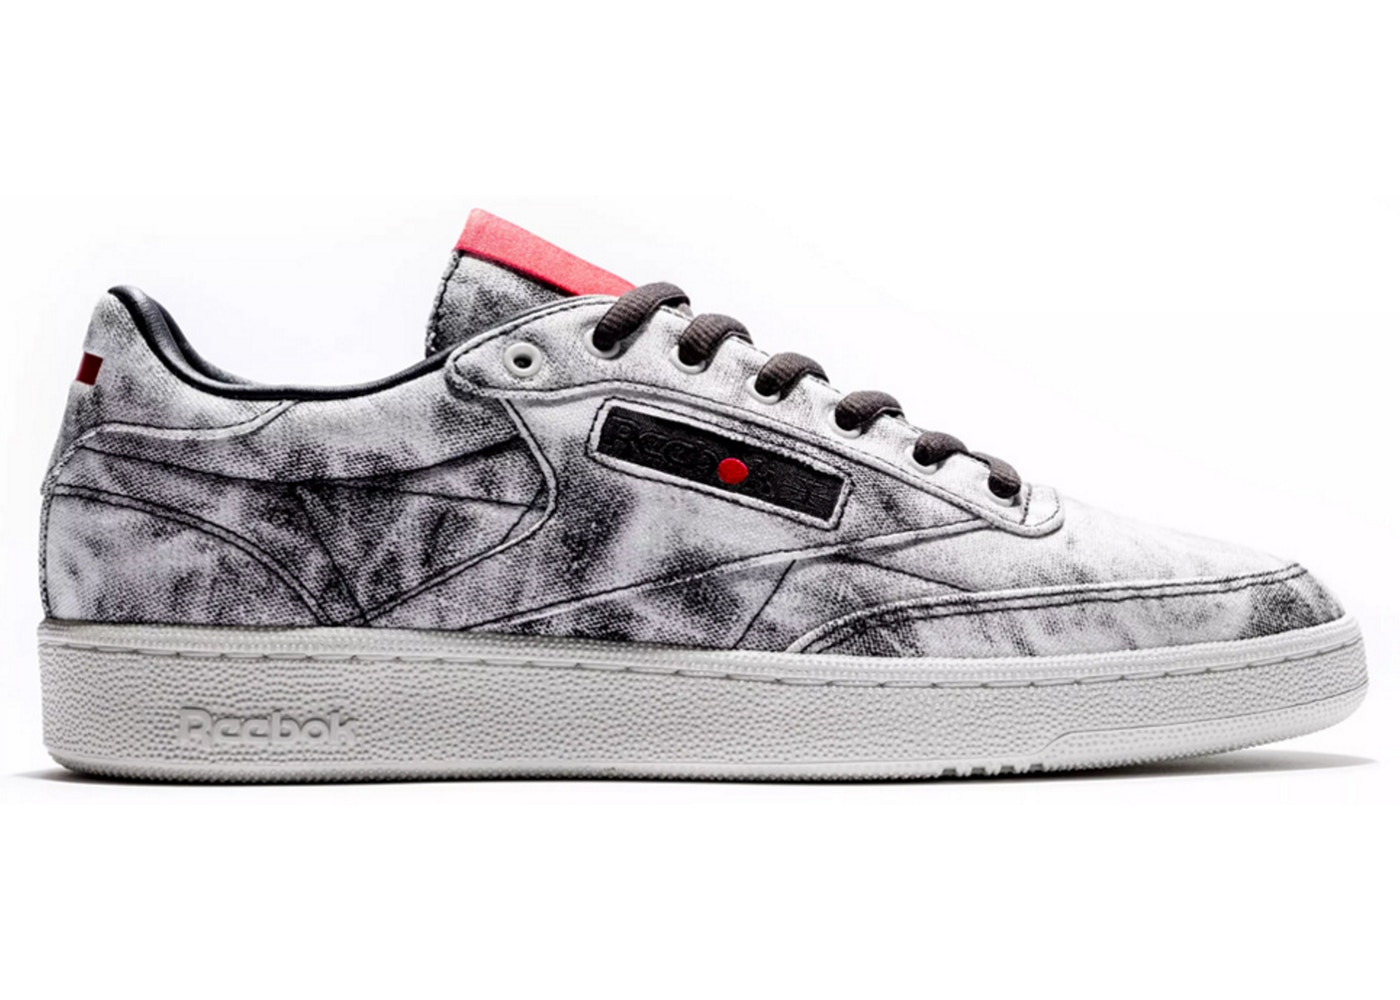 b7409e27 Reebok Club C Kendrick Lamar Acid Wash - BS8205